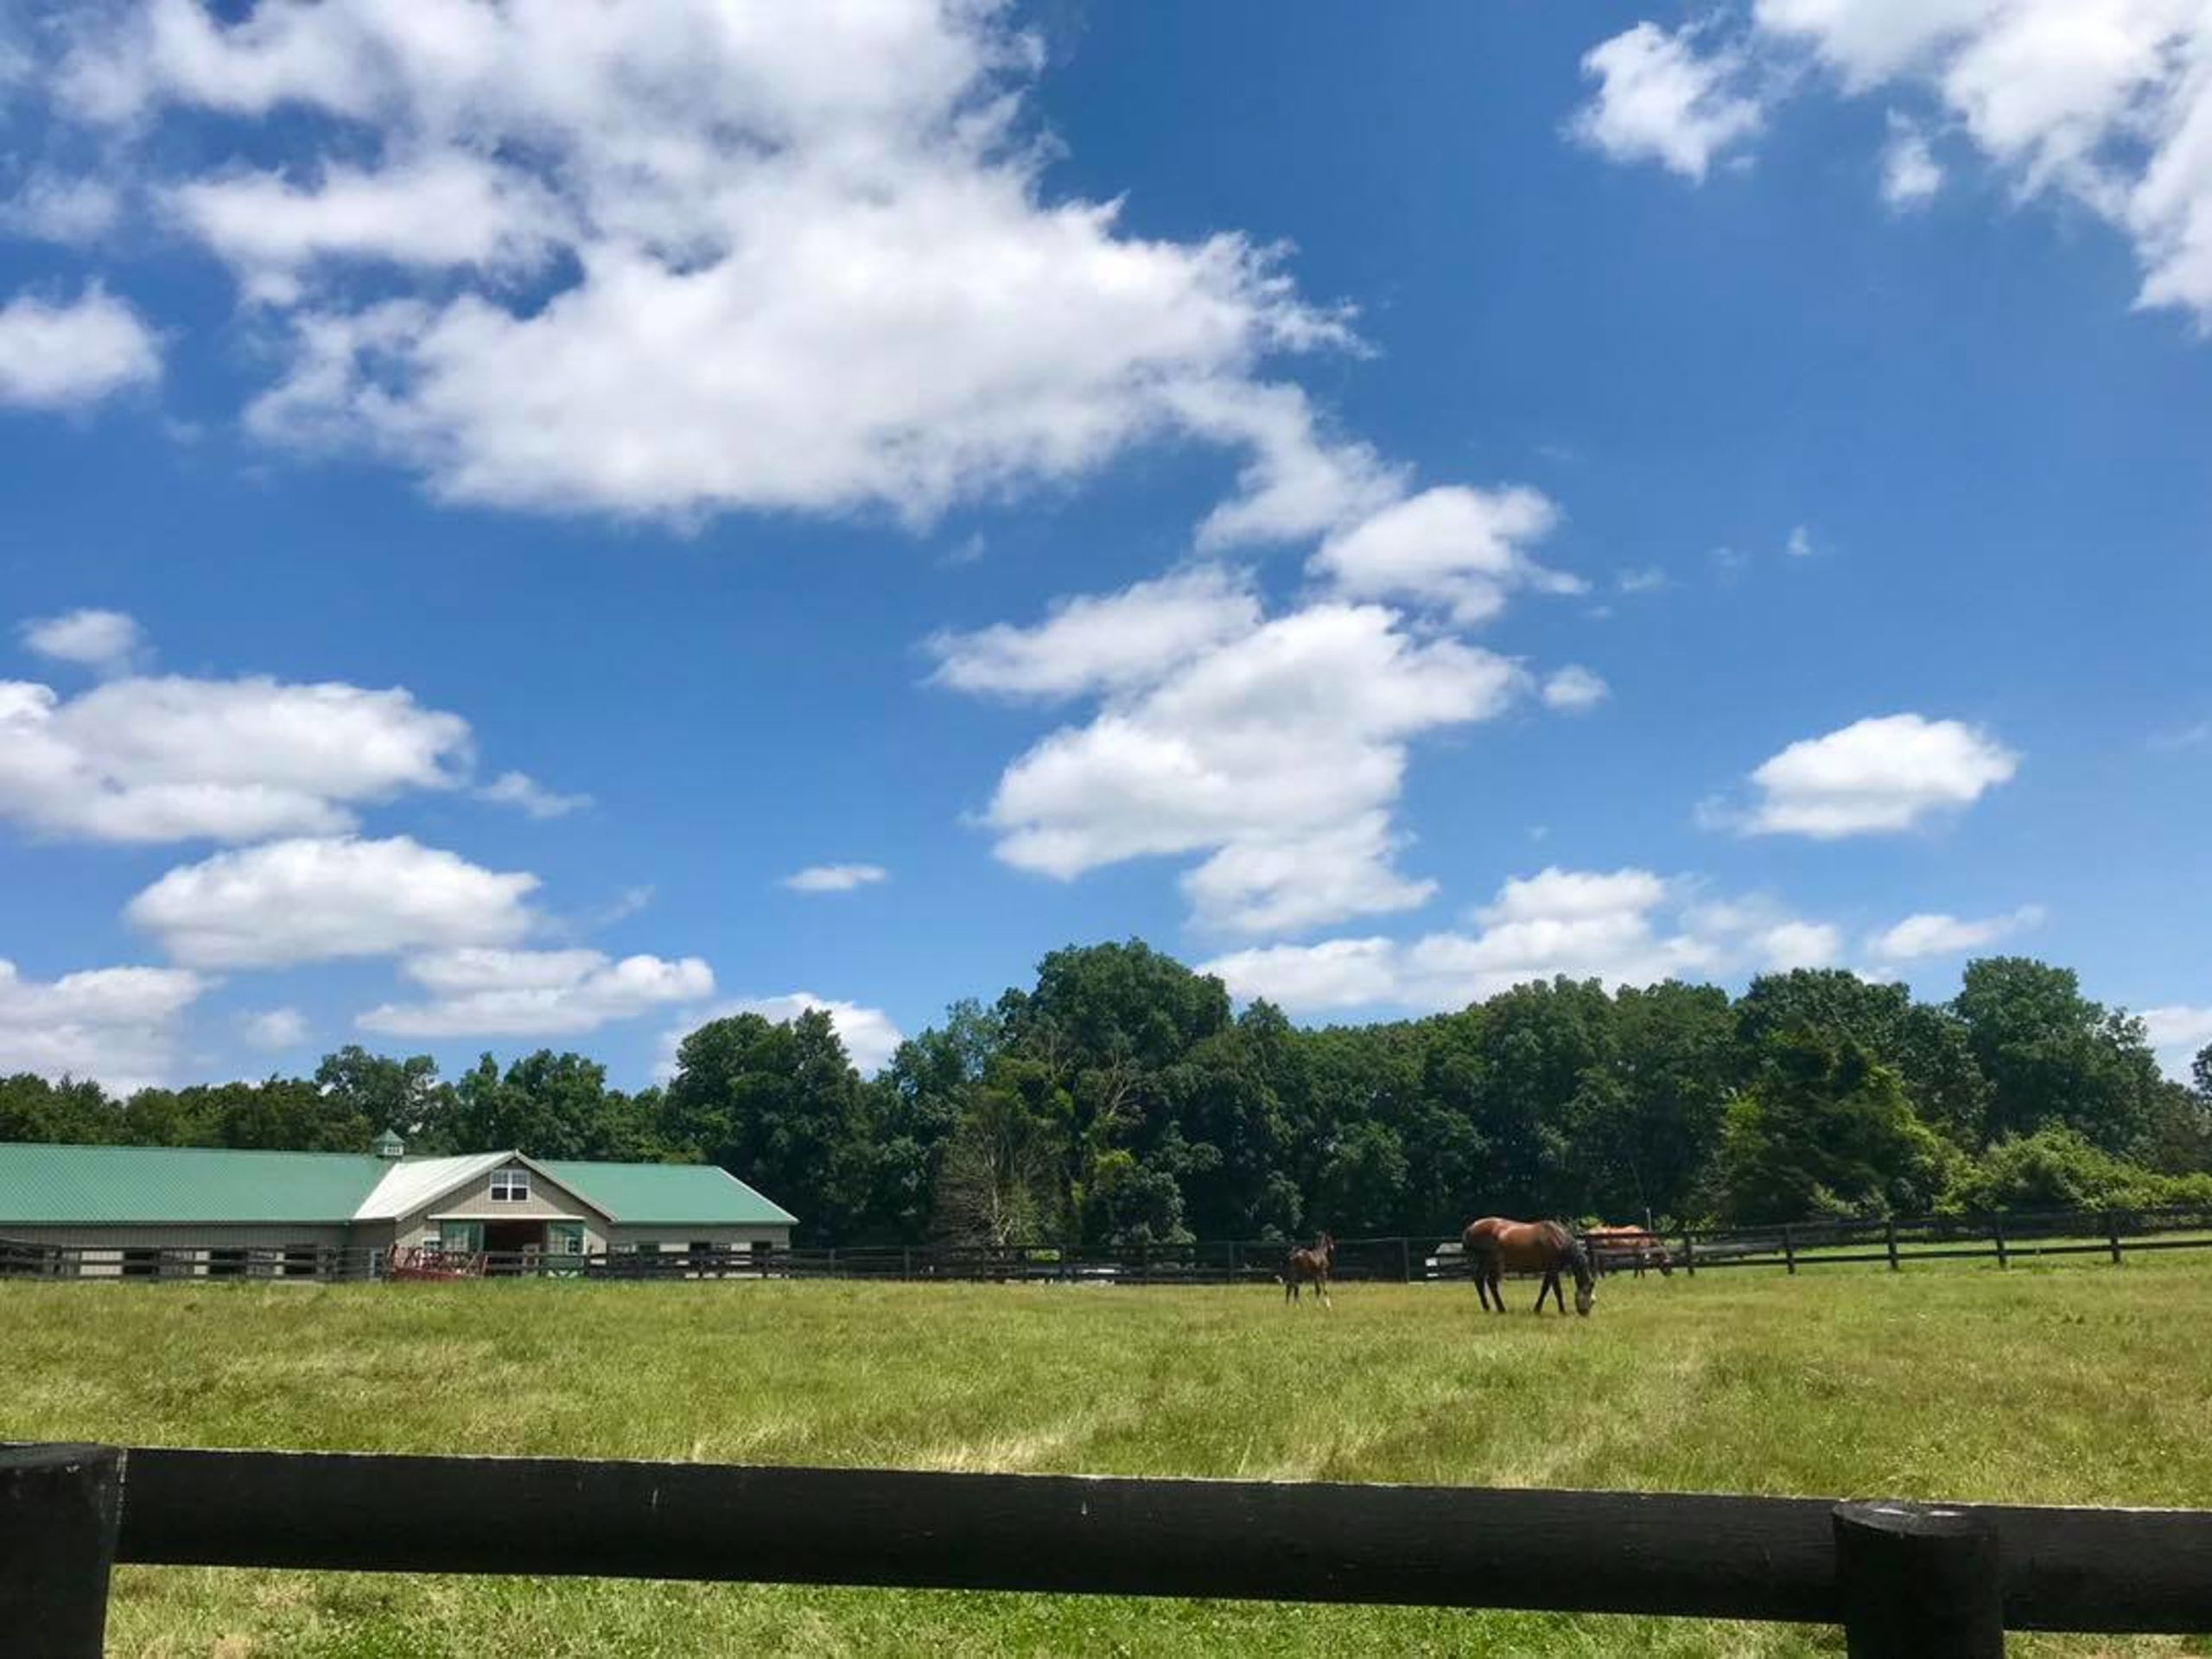 Horse Property / Equestrian Facilities